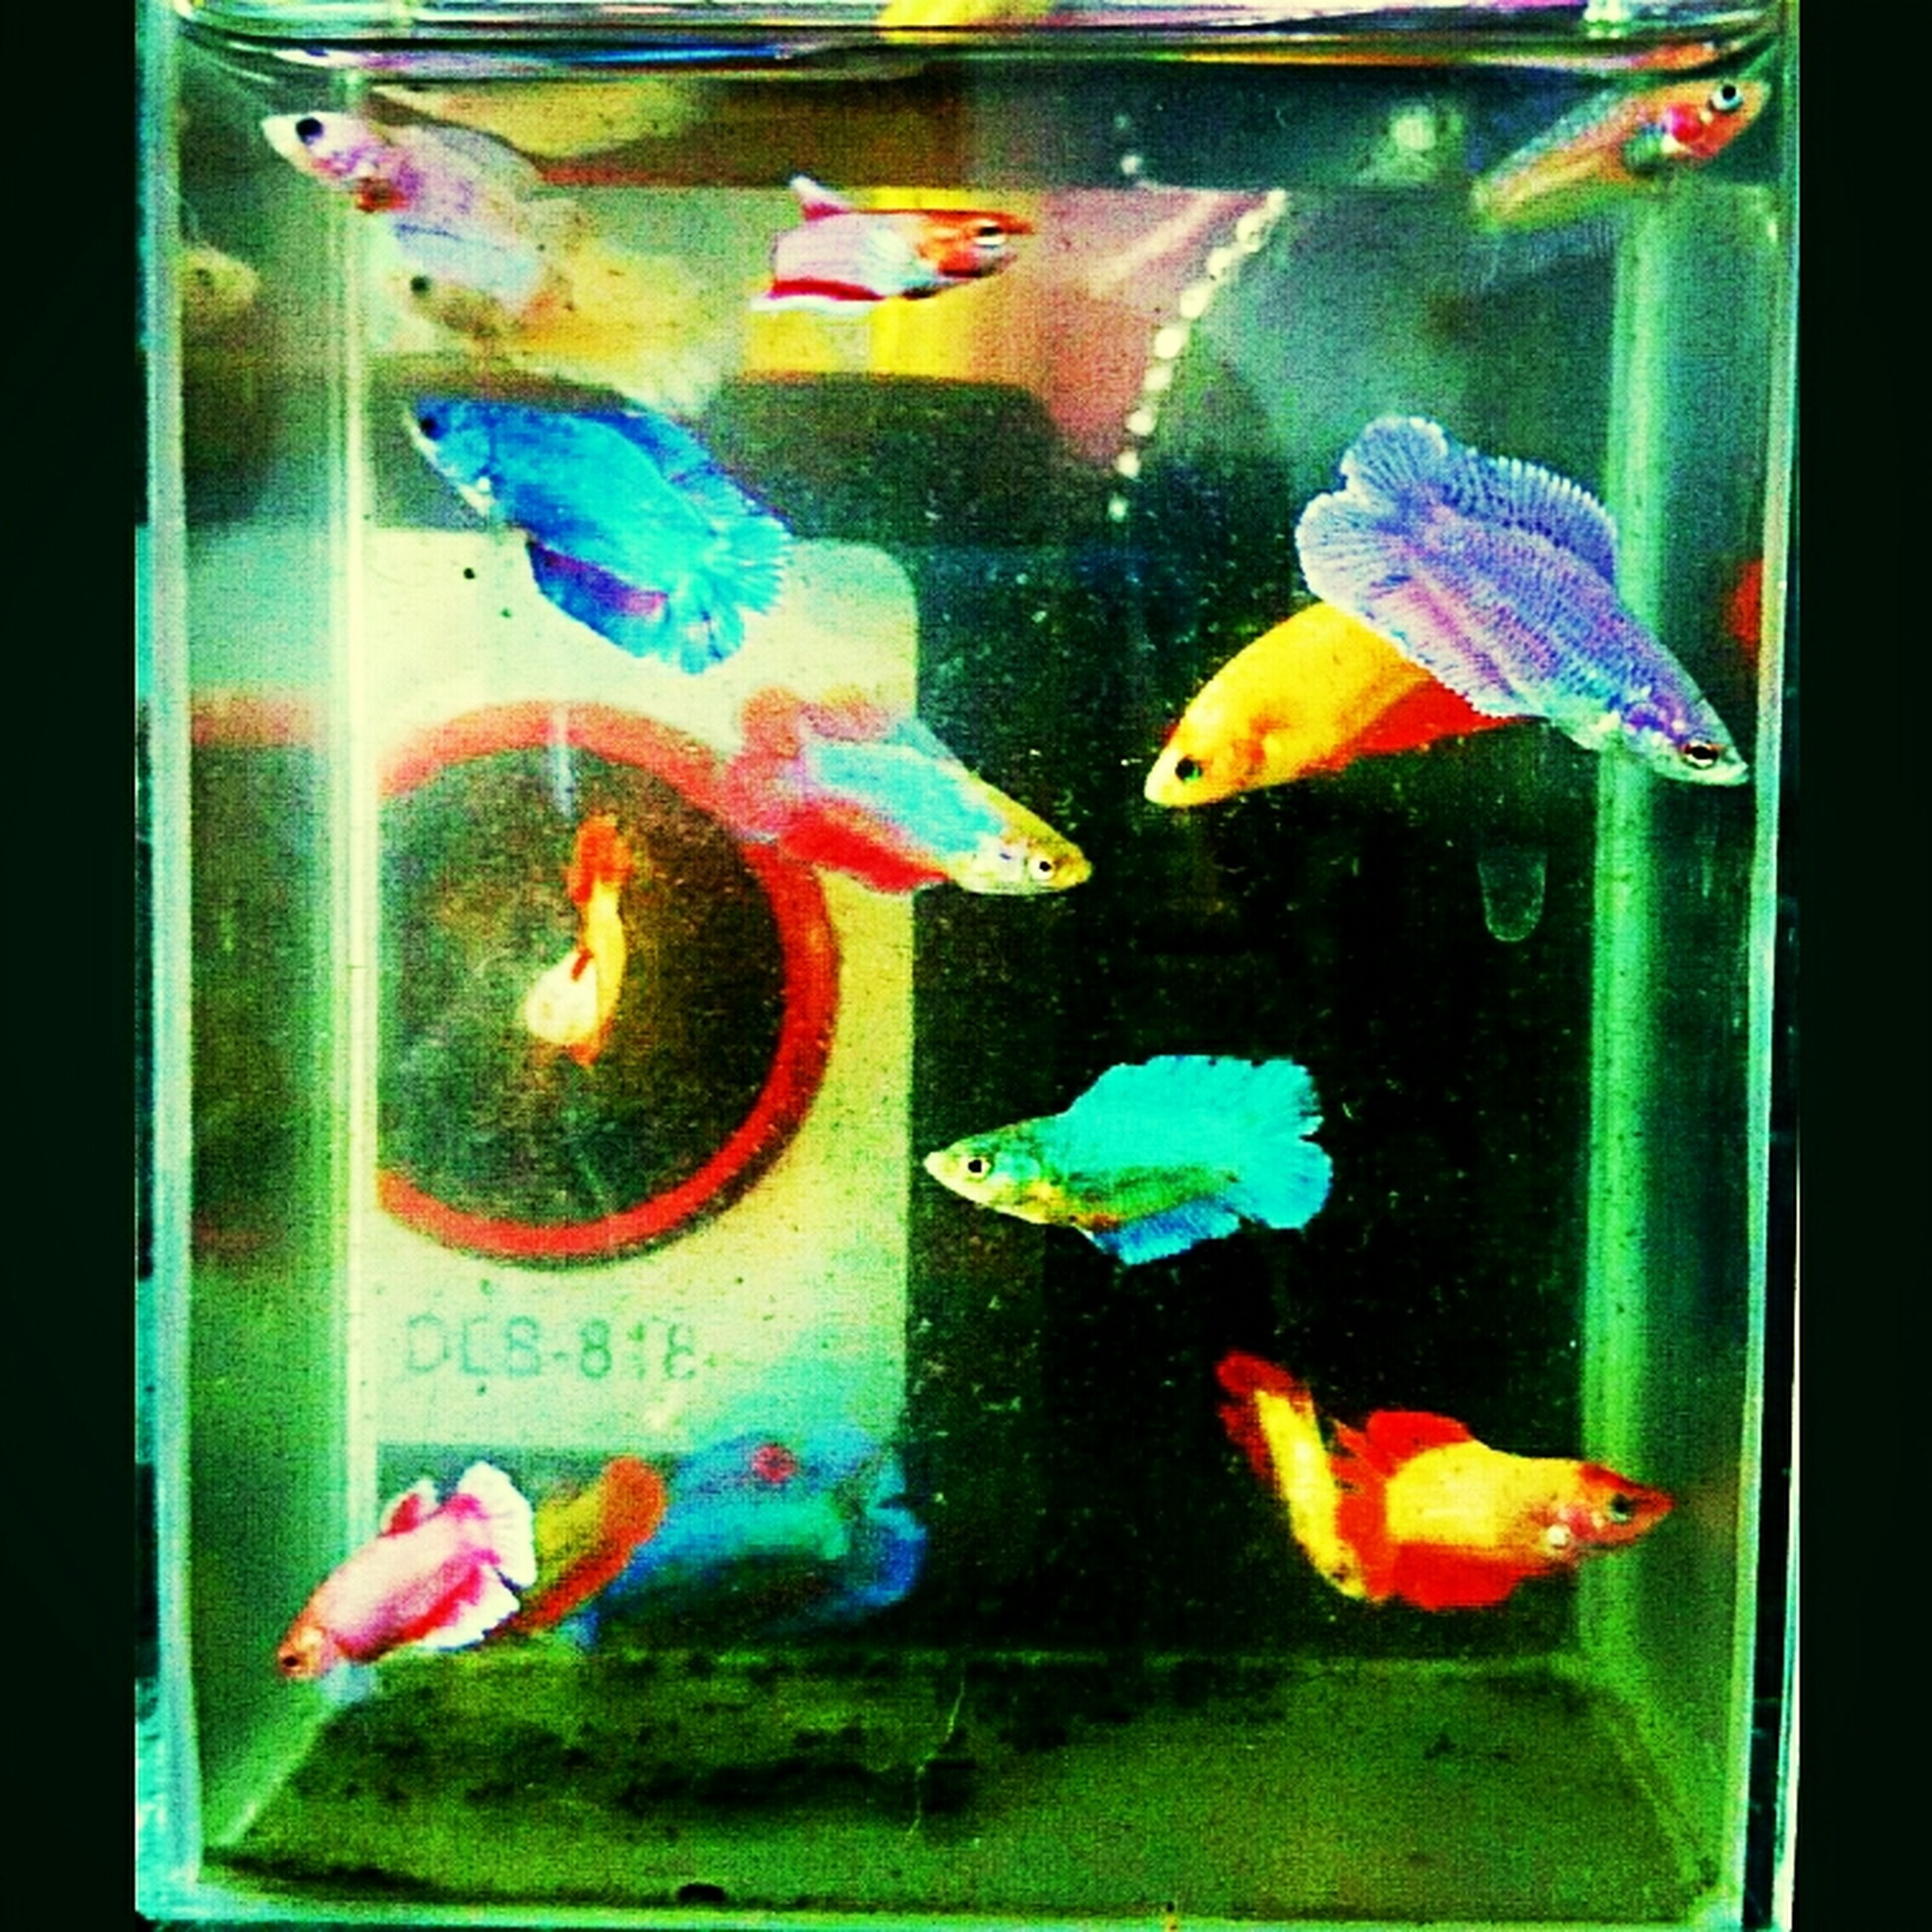 fish, indoors, transfer print, animal themes, glass - material, auto post production filter, transparent, orange color, multi colored, close-up, wildlife, animals in the wild, water, aquarium, sea life, fish tank, no people, animals in captivity, underwater